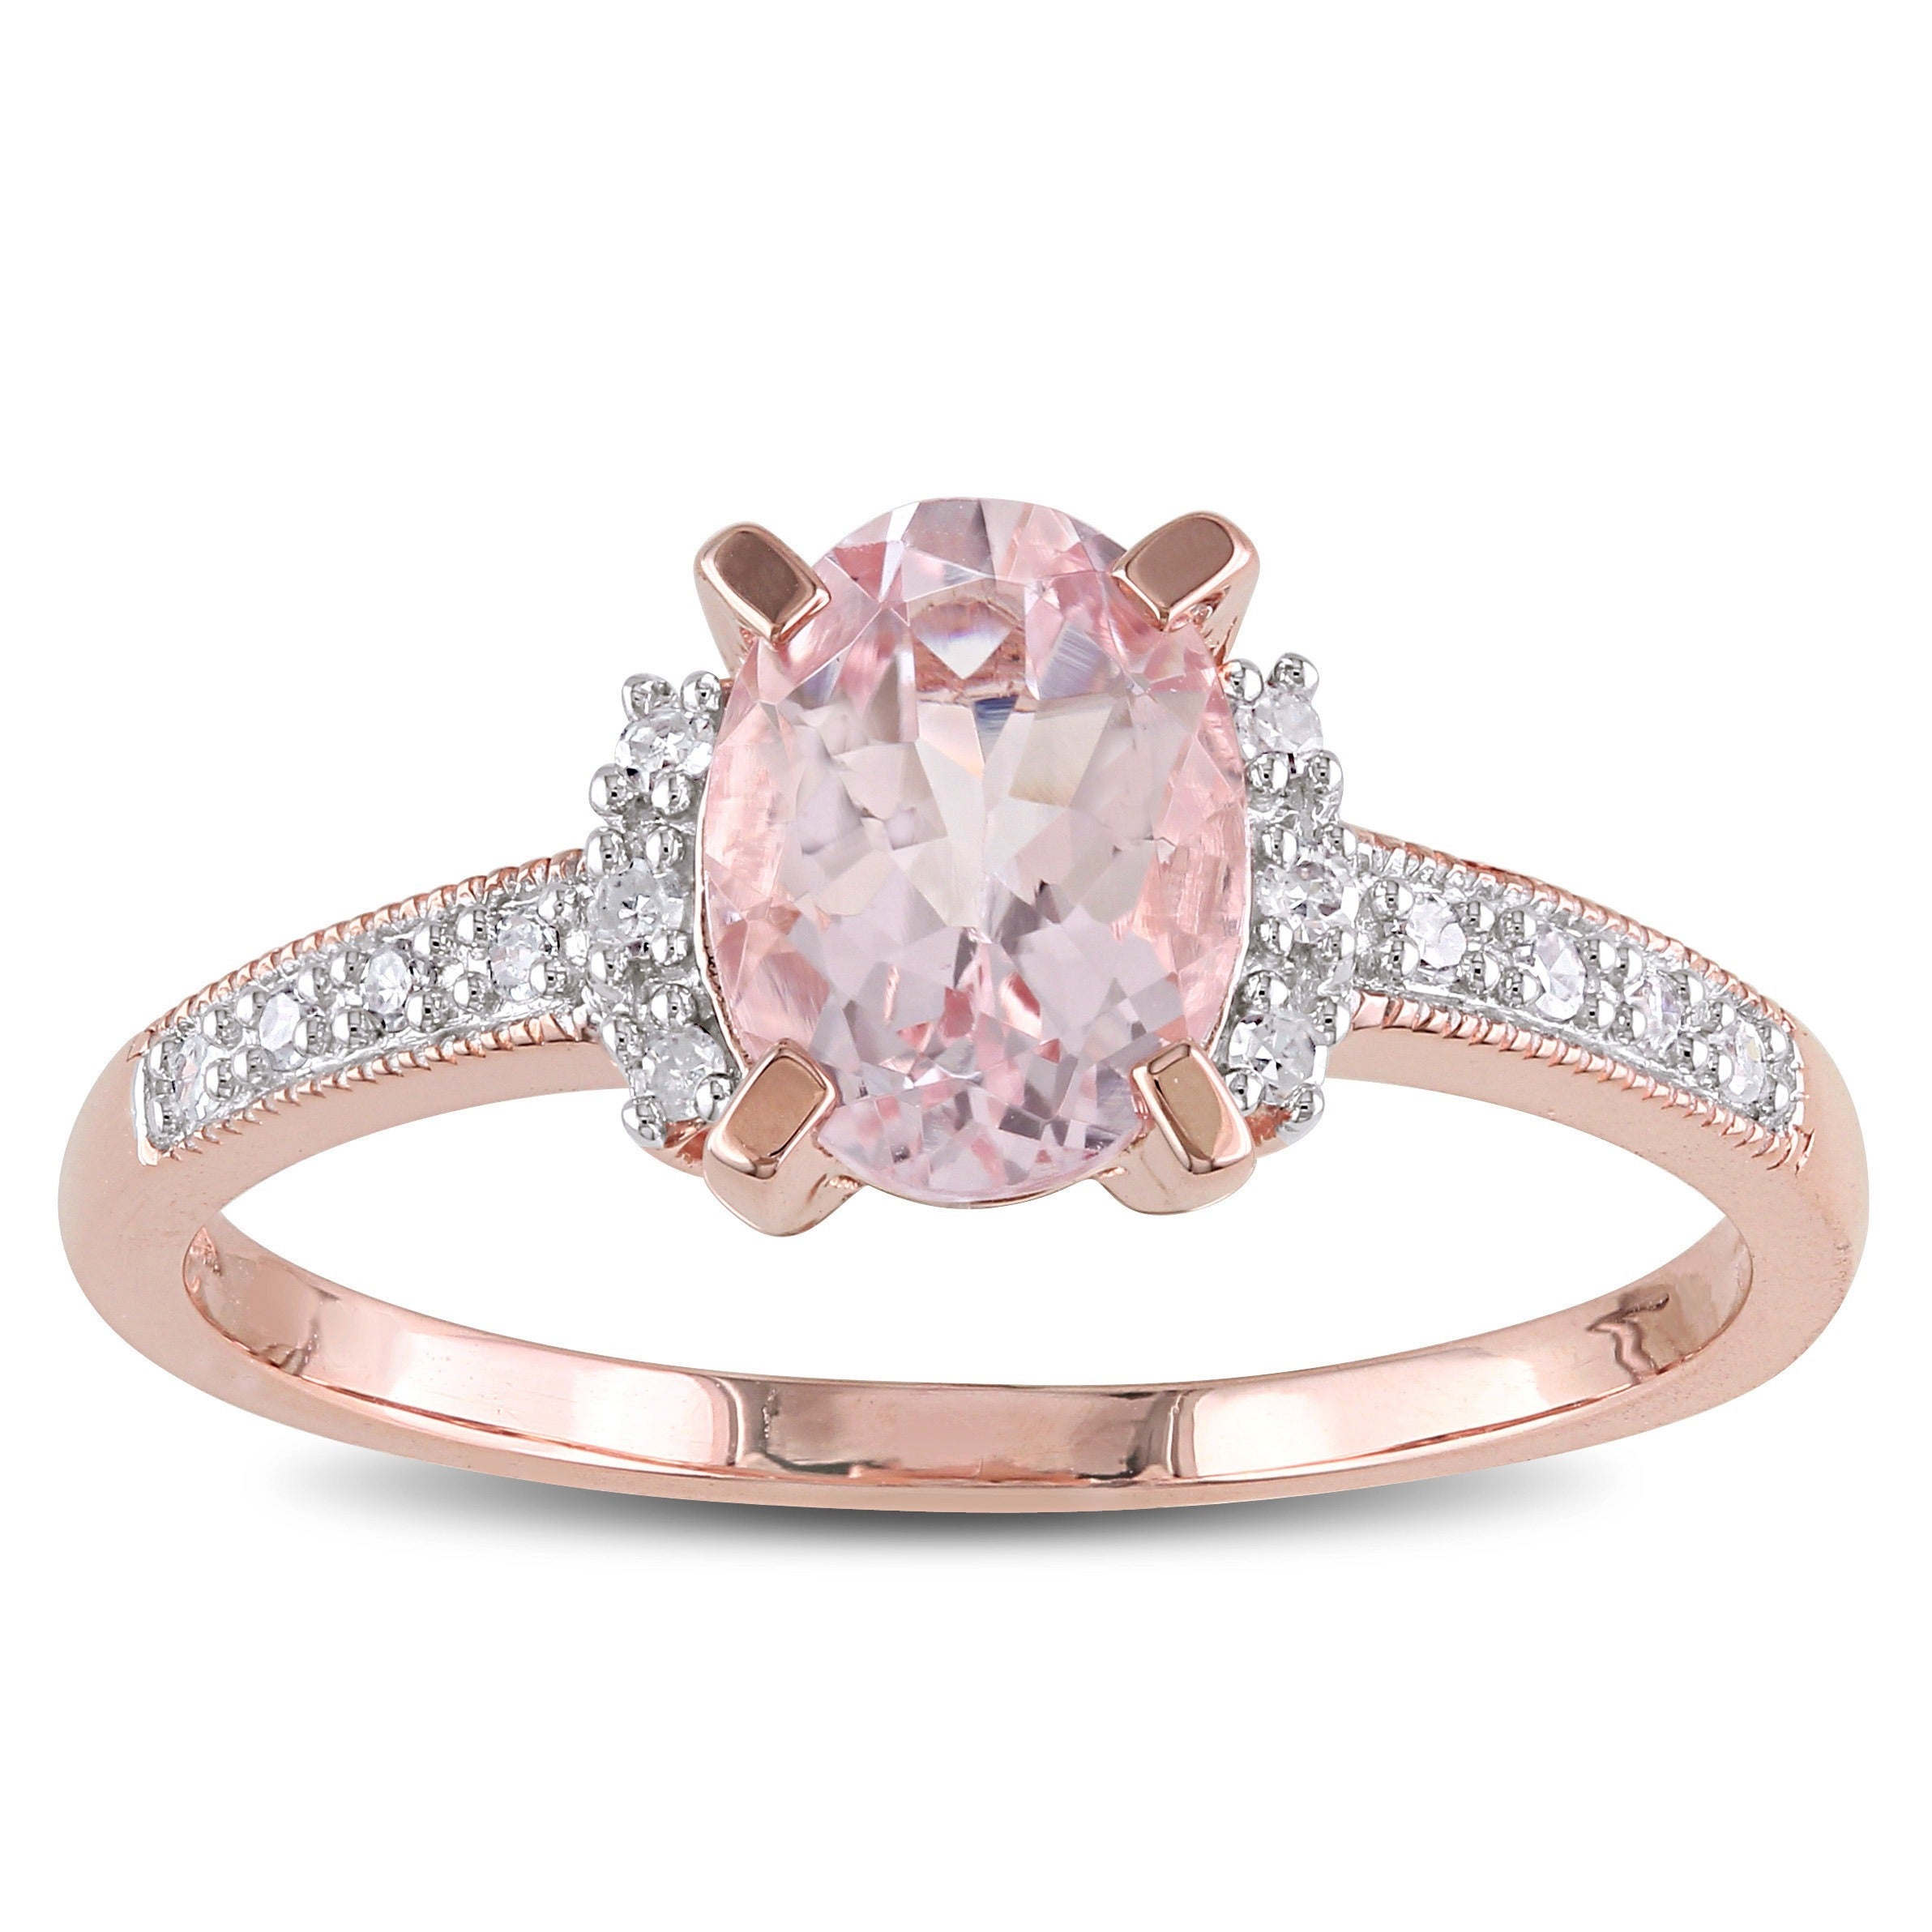 overstock ct tw miadora tdw halo ring pink gh tgw shipping stone rings gold product free jewelry engagement fashion morganite diamond watches today rose and